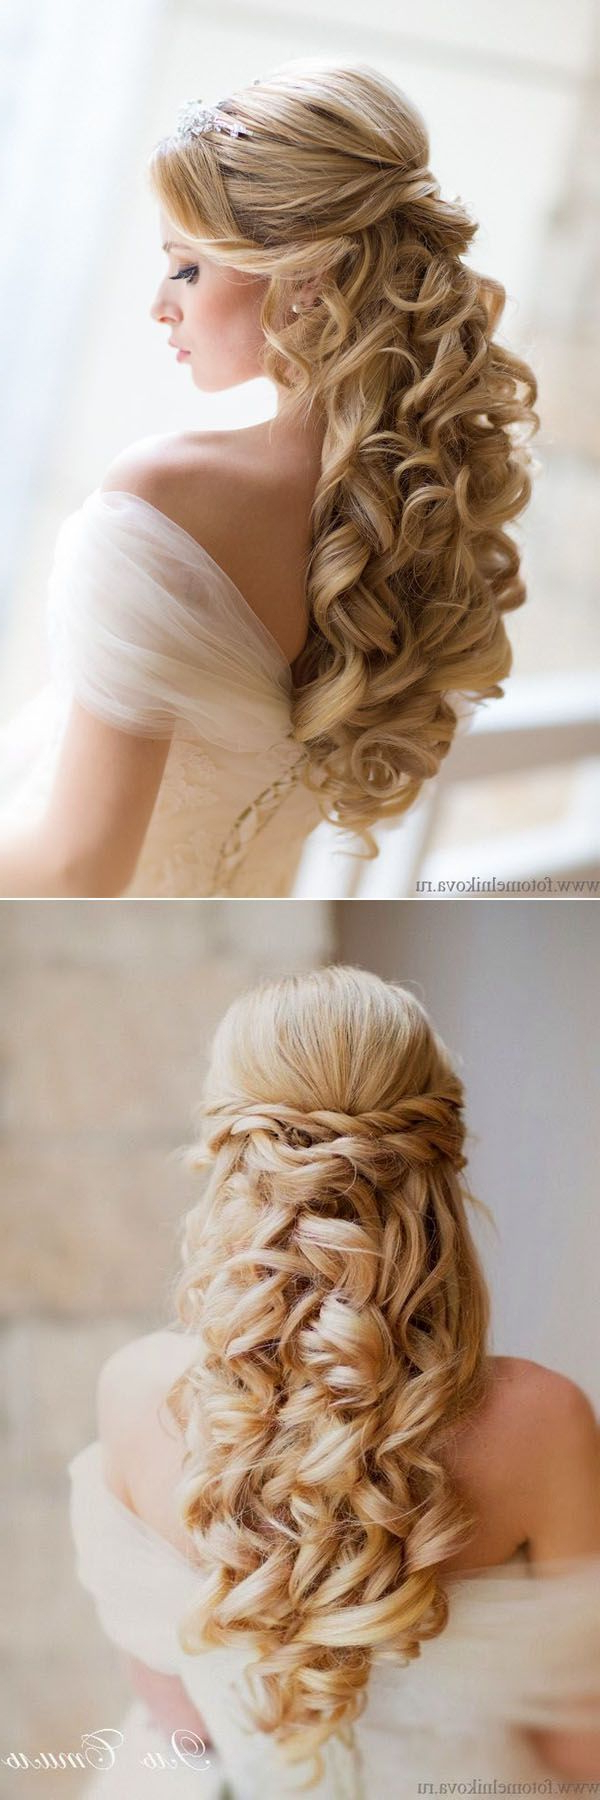 20 Awesome Half Up Half Down Wedding Hairstyle Ideas (View 7 of 20)